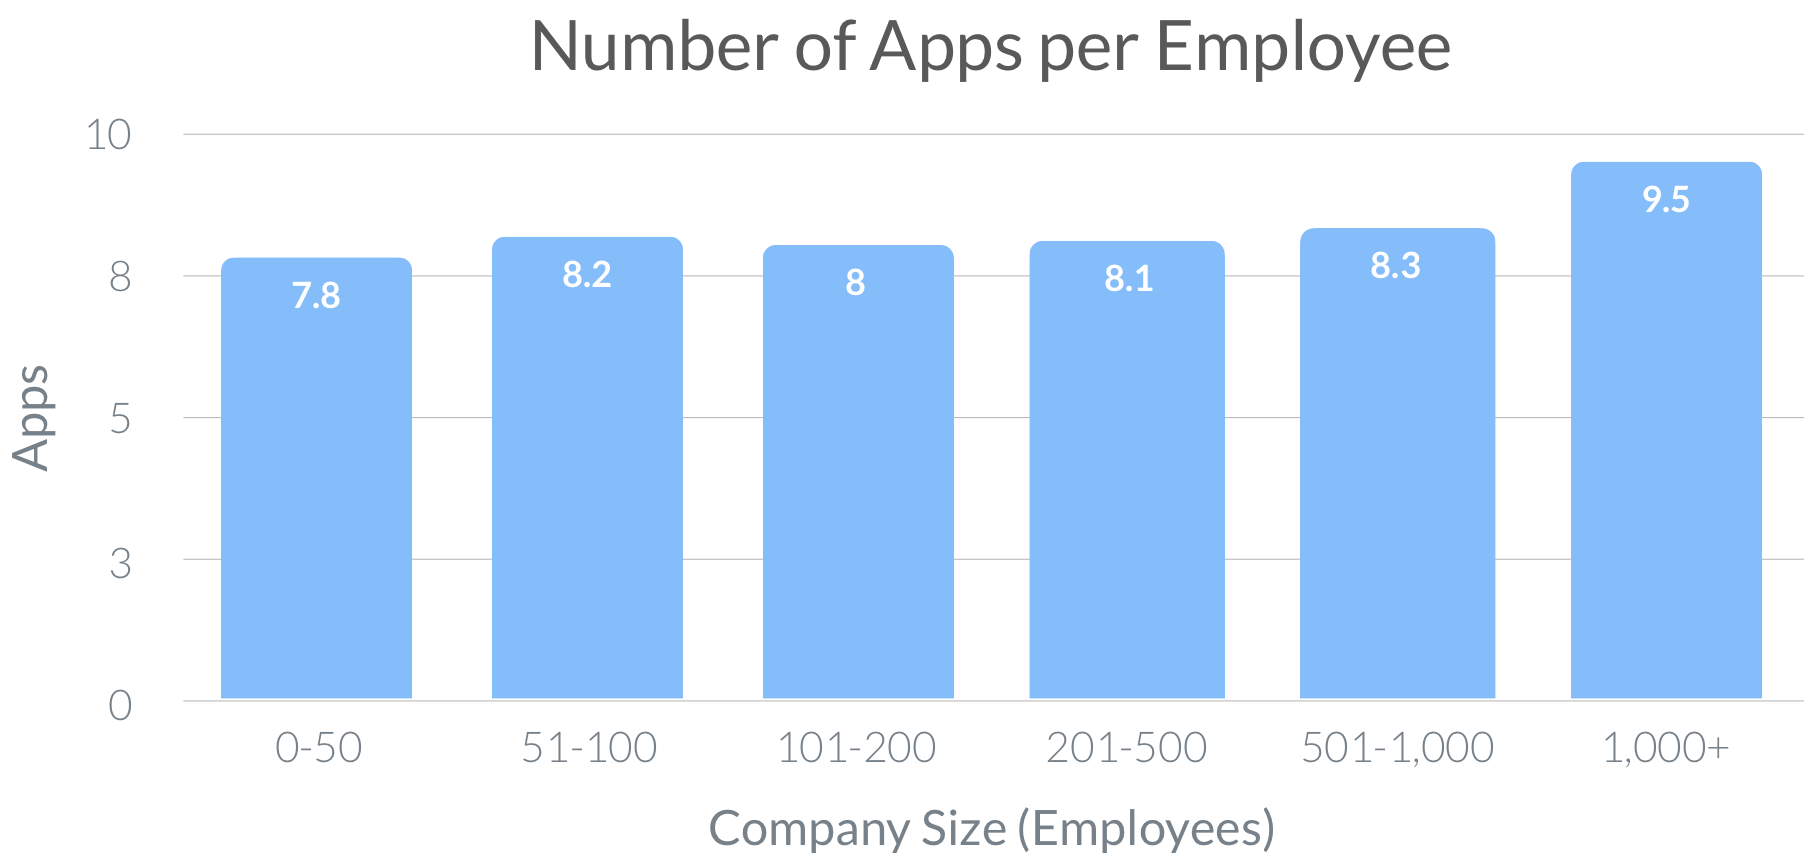 number of apps per employee graphic